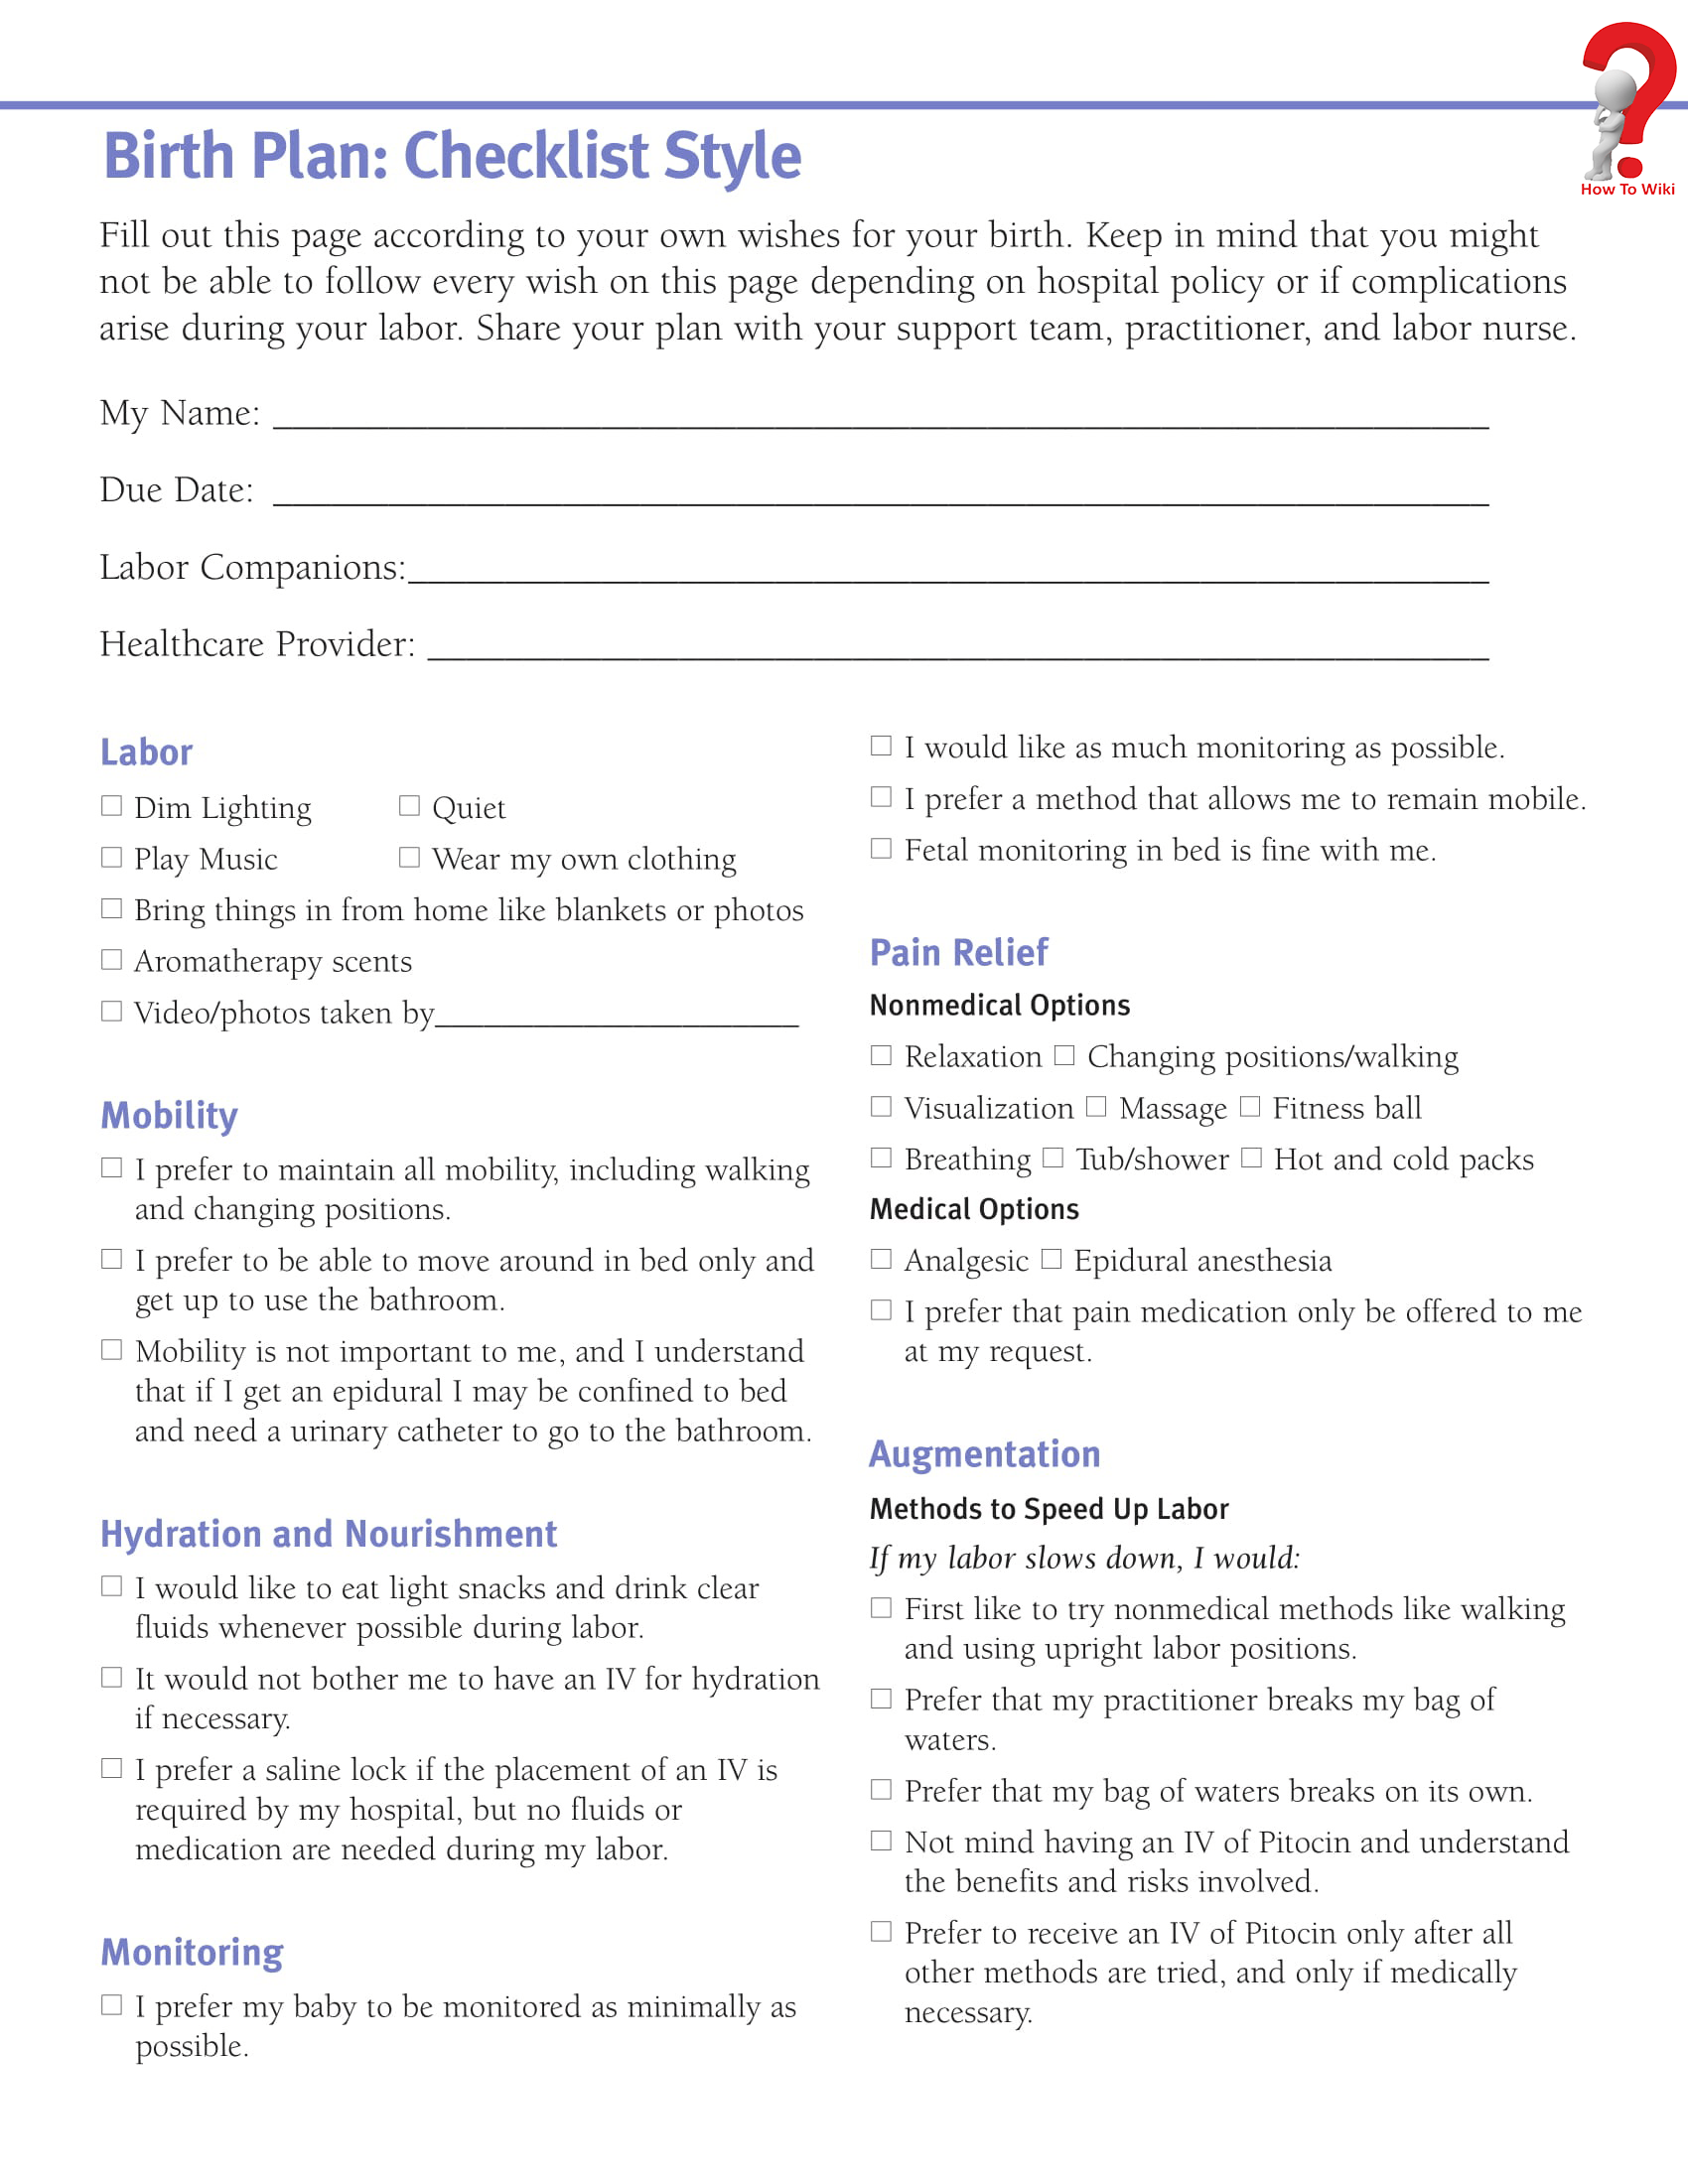 C Section Birth Plan Template